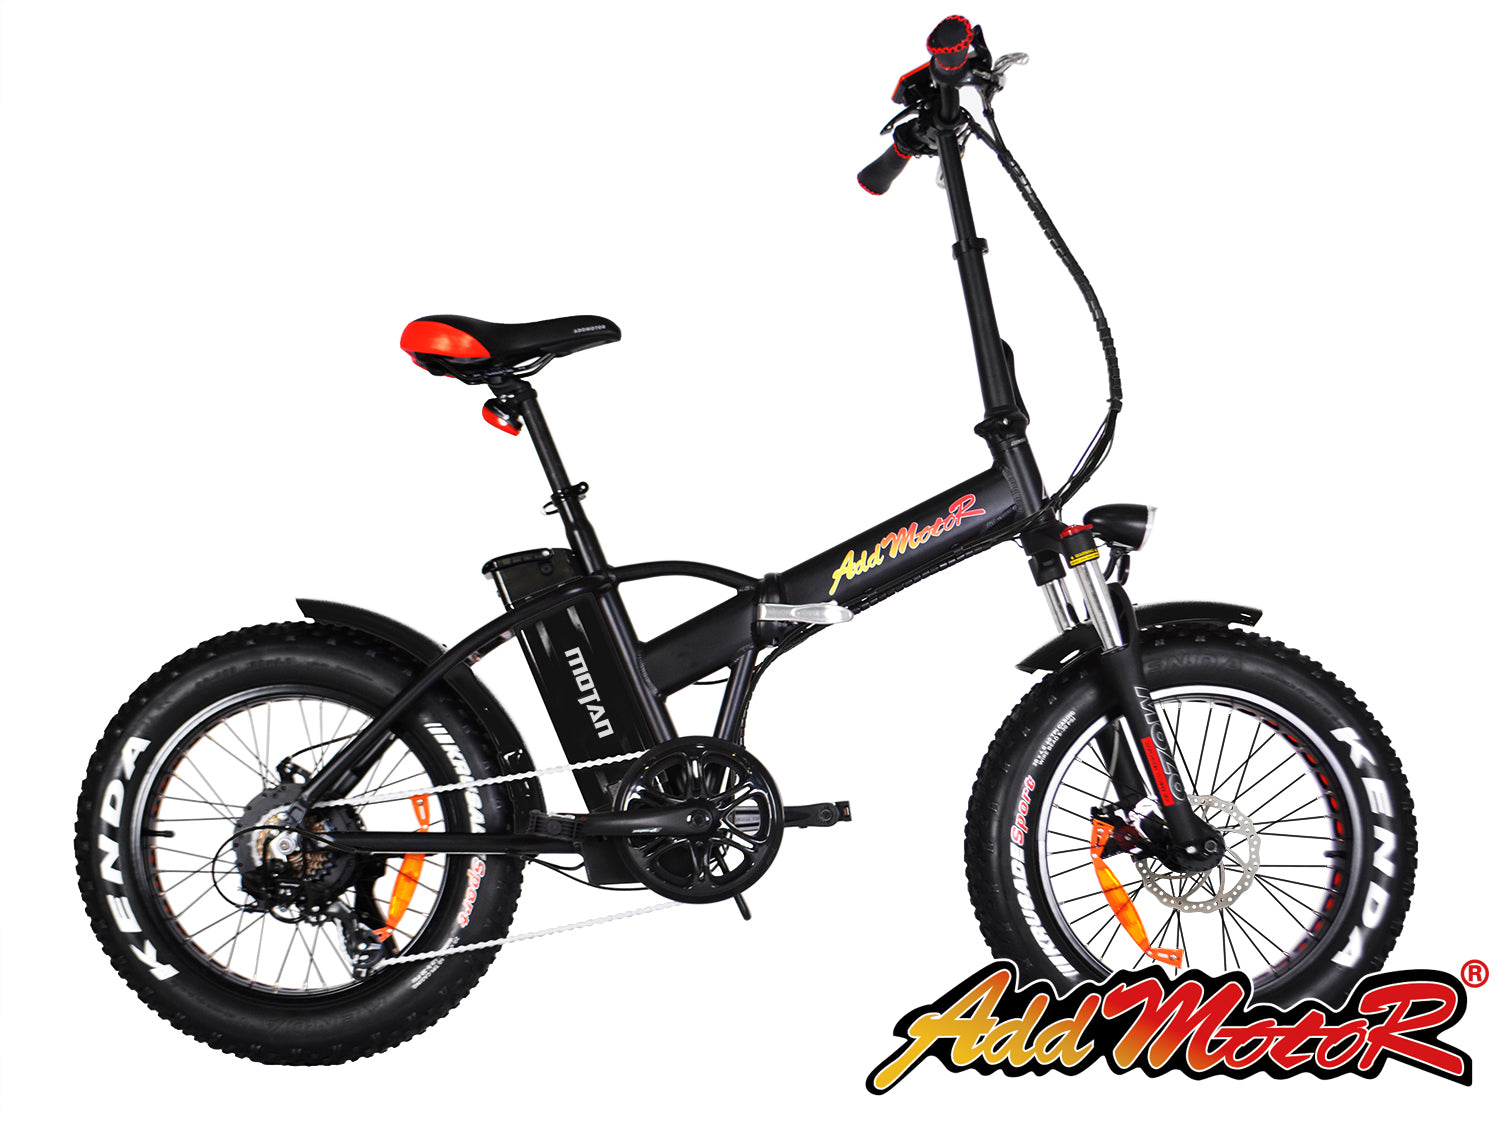 Addmotor MOTAN M150 Platinum Folding Electric Fat Tire Bike - Electric Bike & Skate